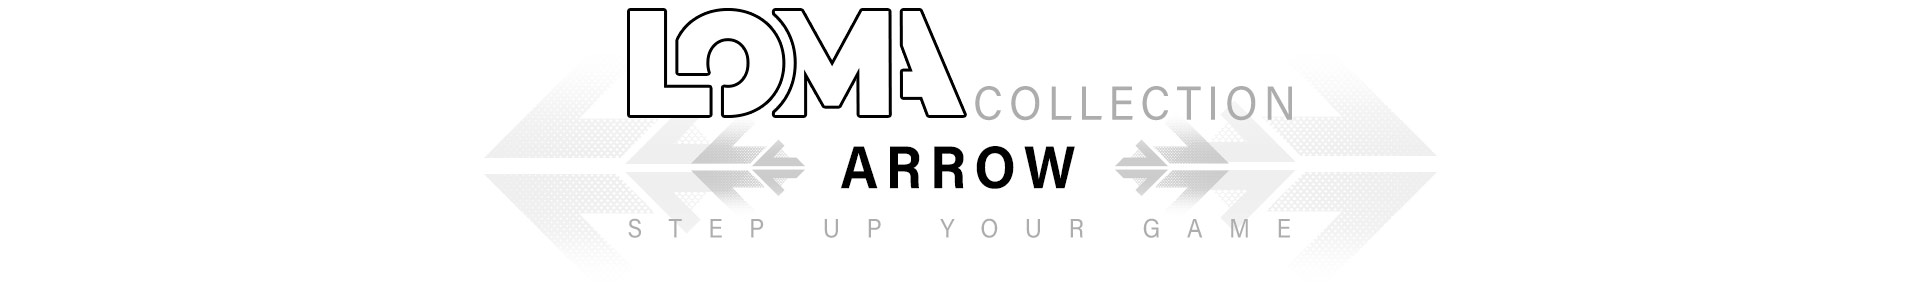 Loma Arrow